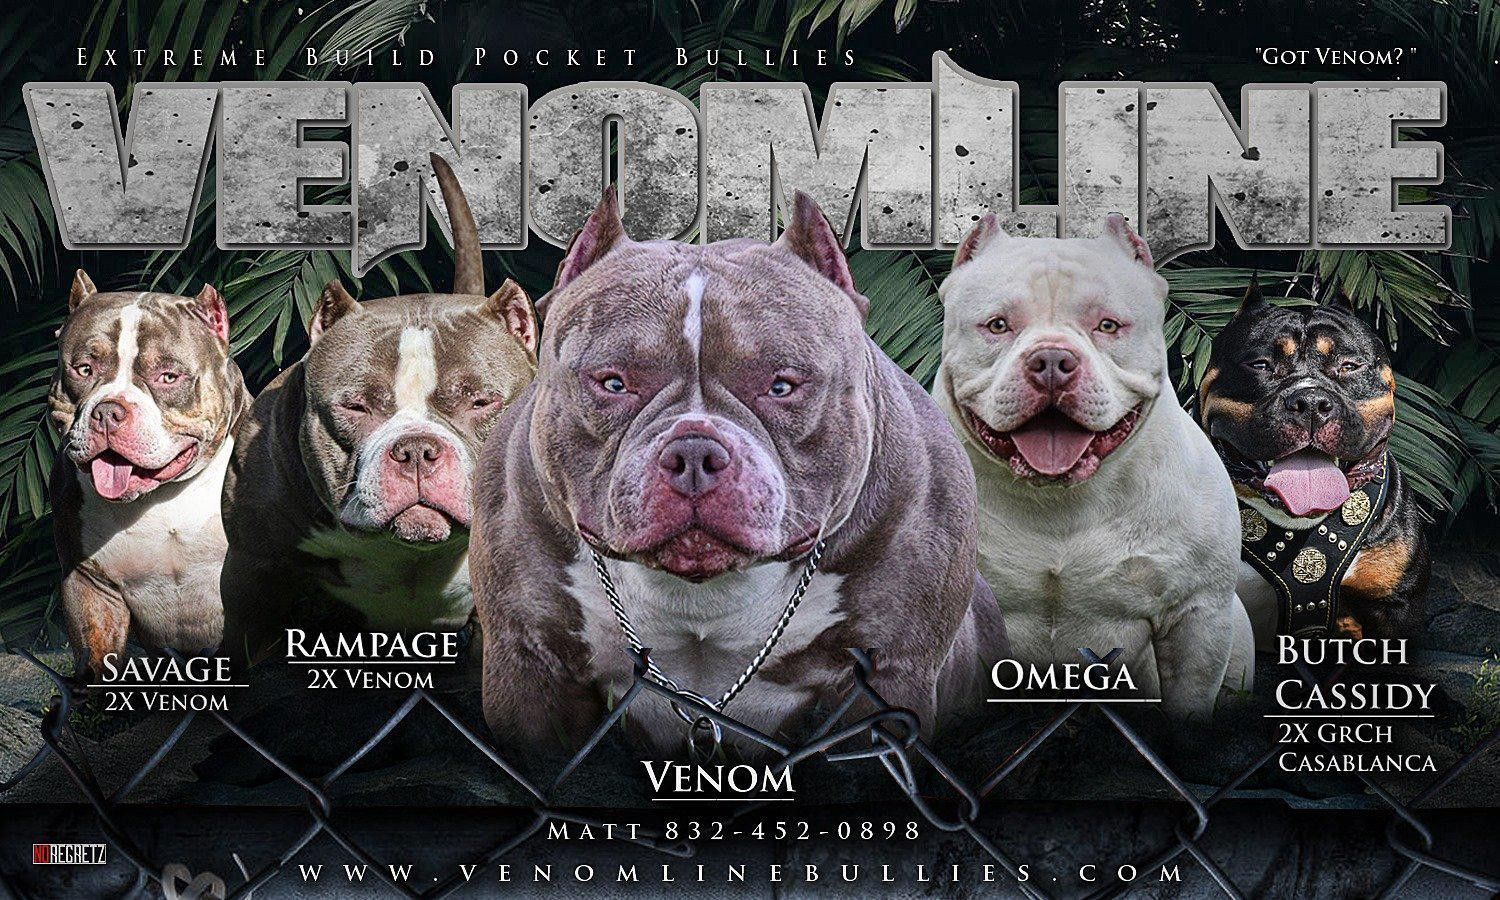 The Top Extreme Build American Bully Studs Pocket Bully